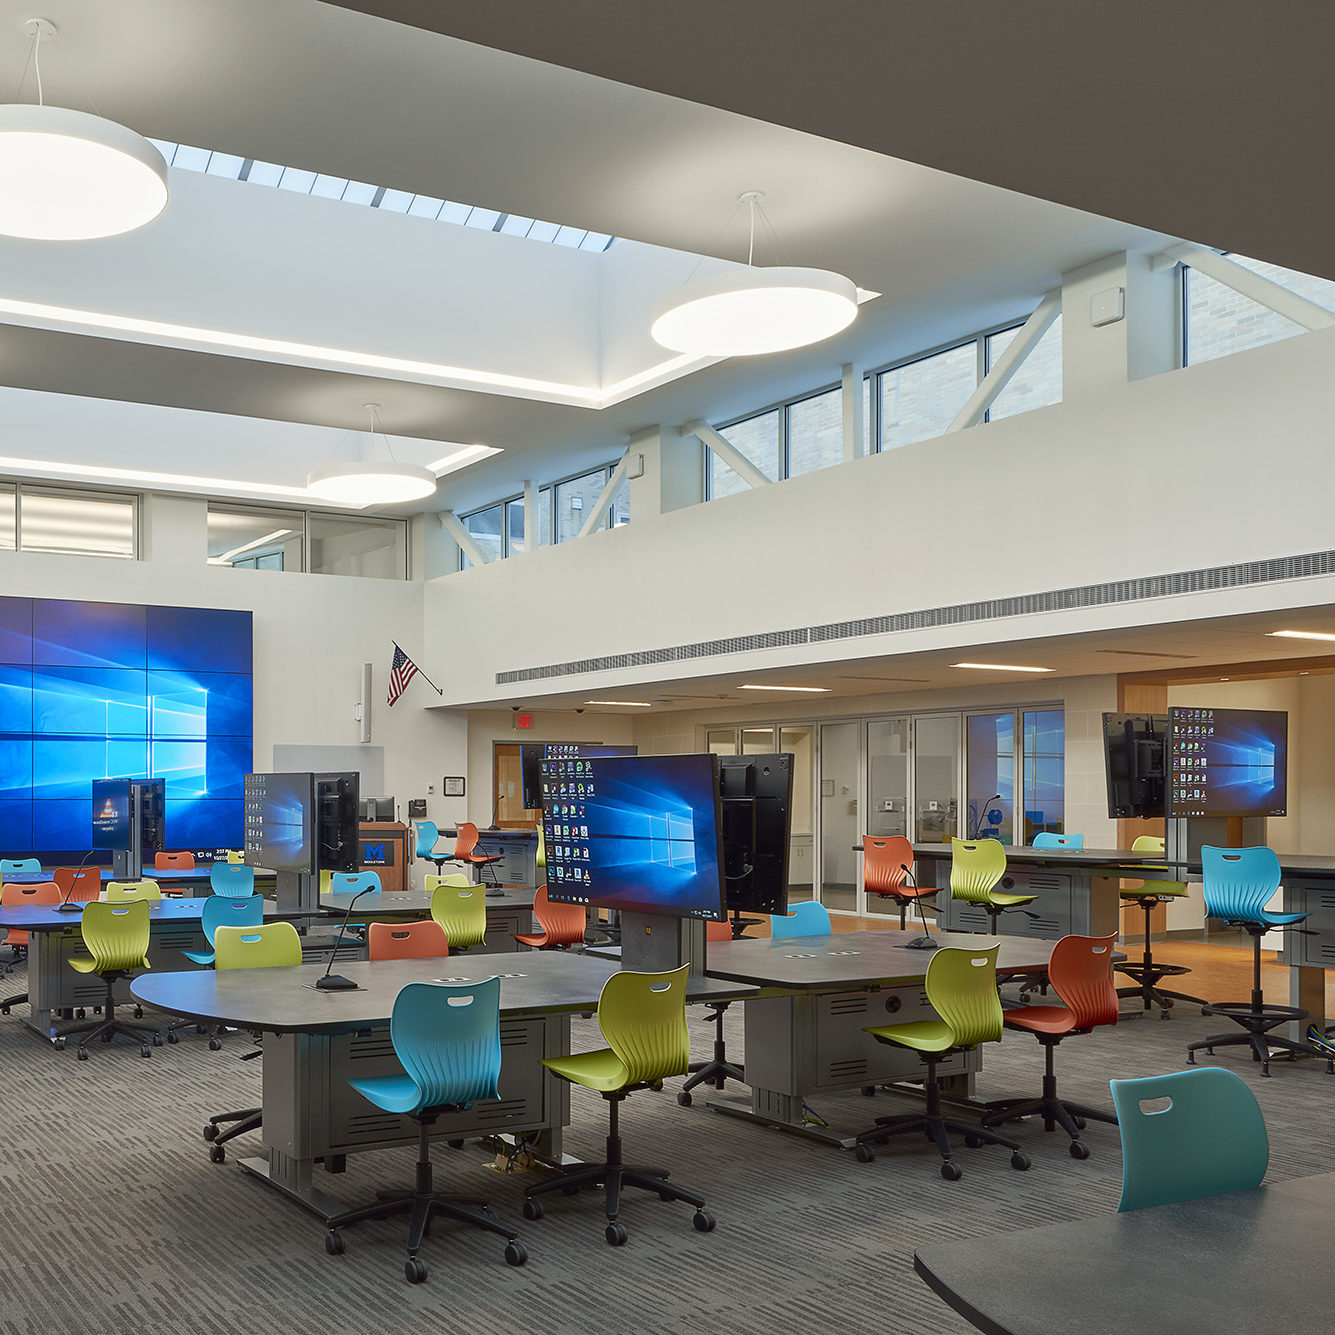 Promoting Safety and Security Through Design